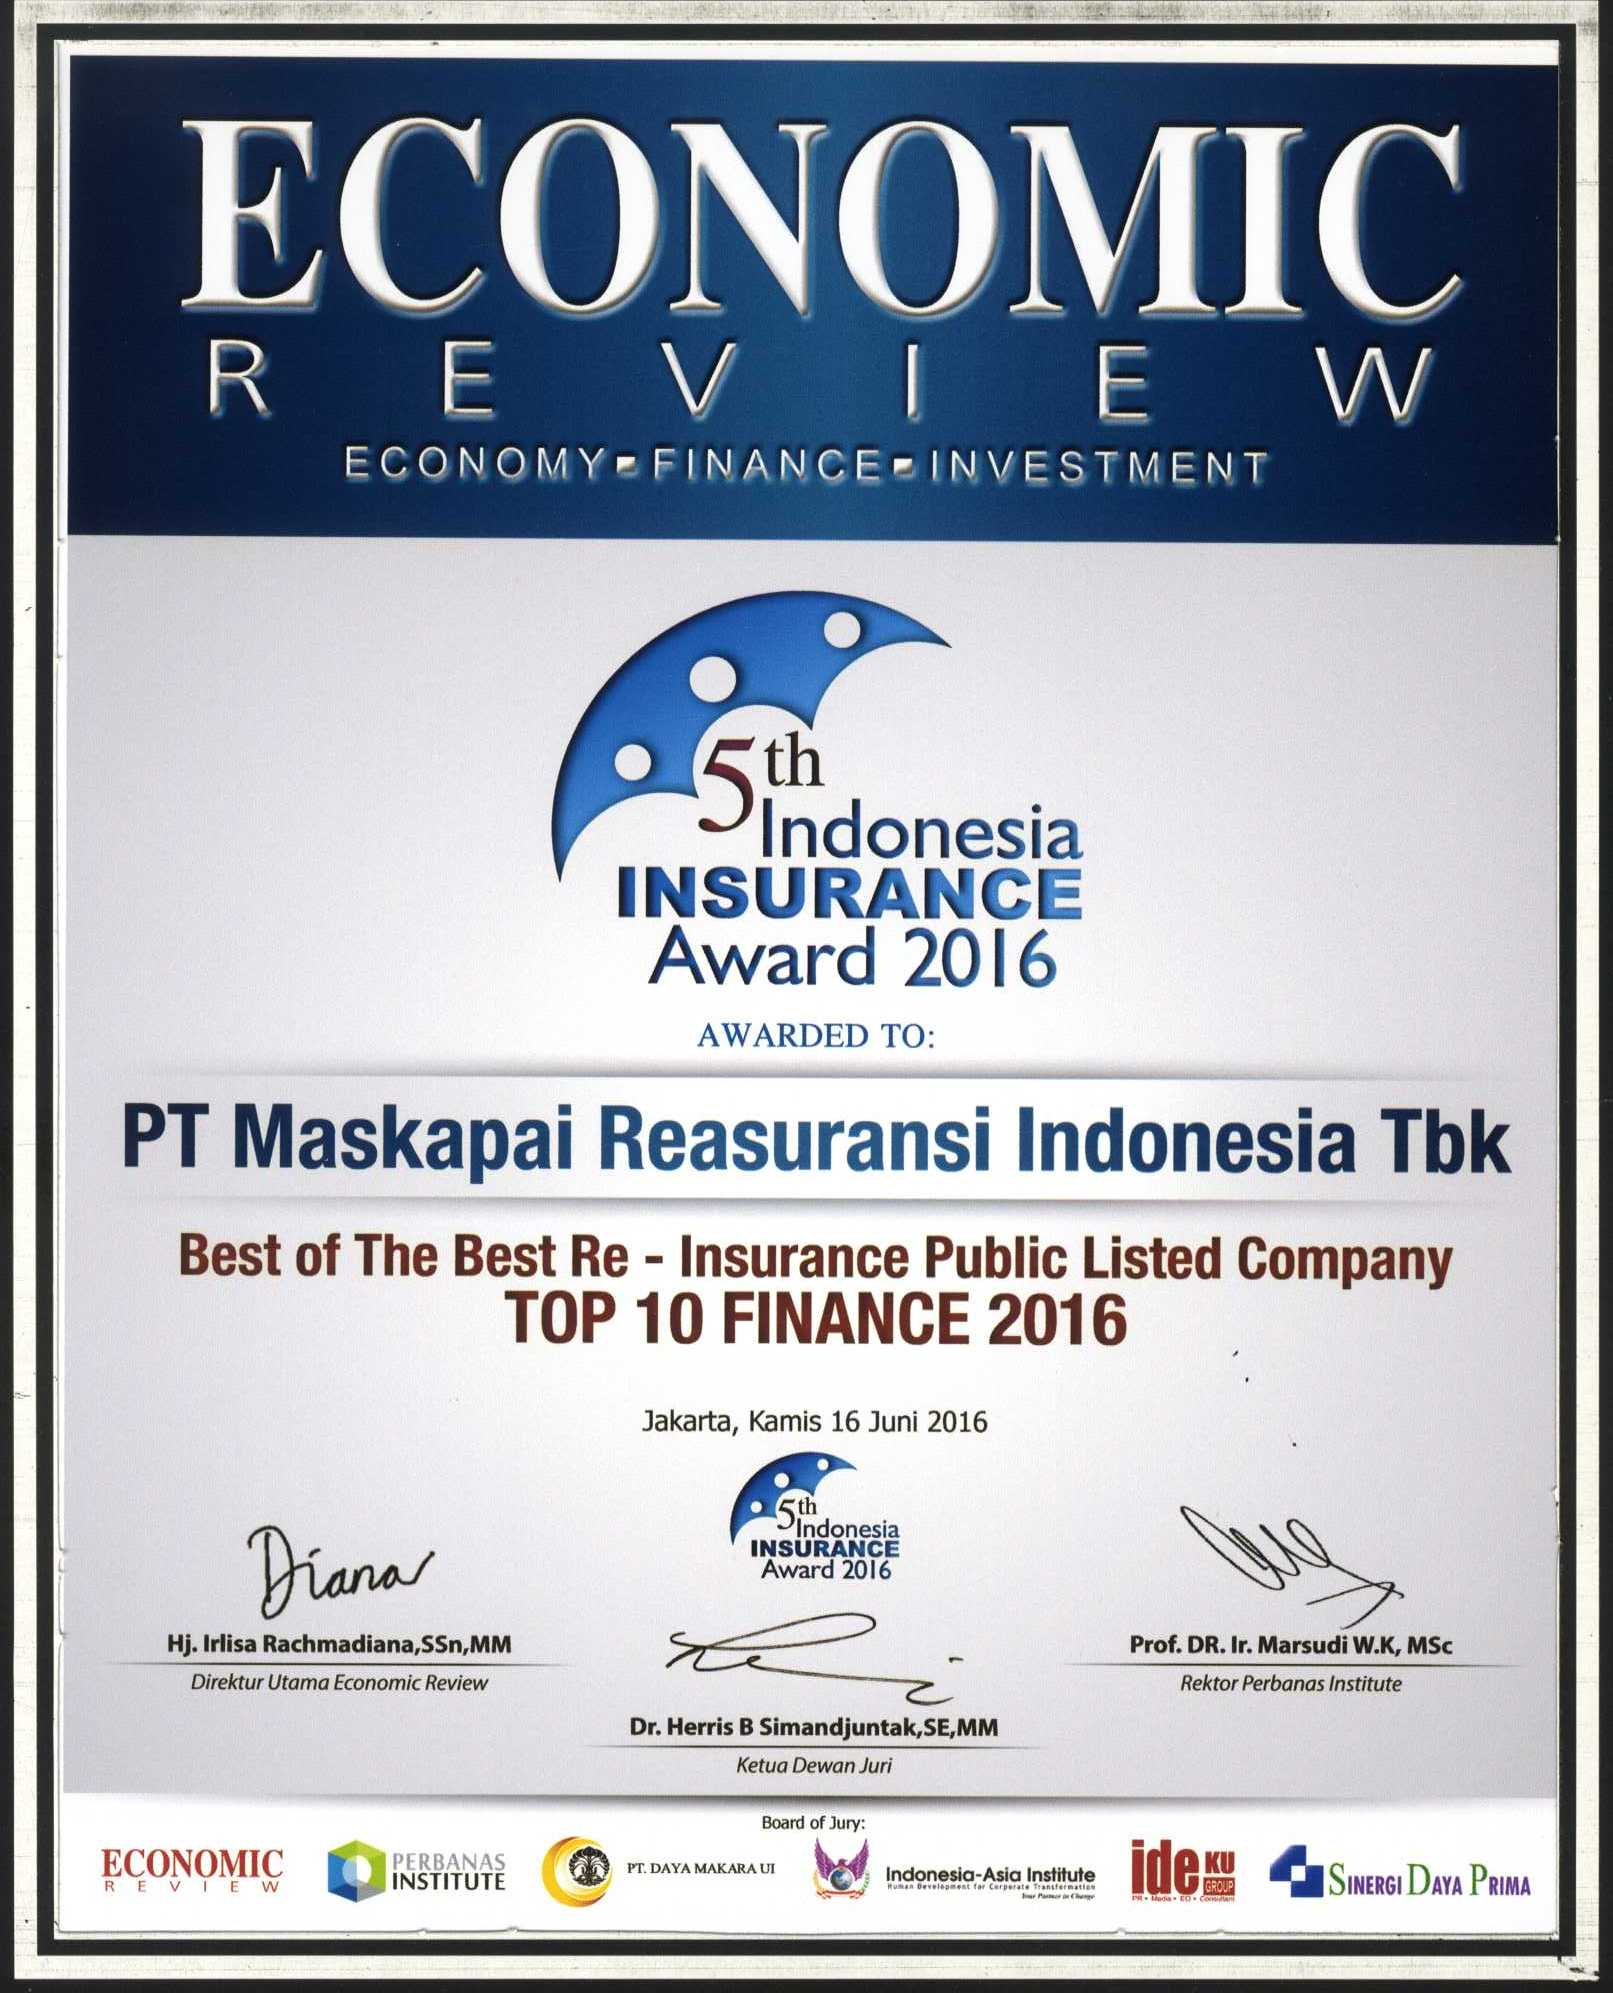 Majalah Economic Review : Top 10 Finance 2016 - 5th Indonesia Insurance Award 2016